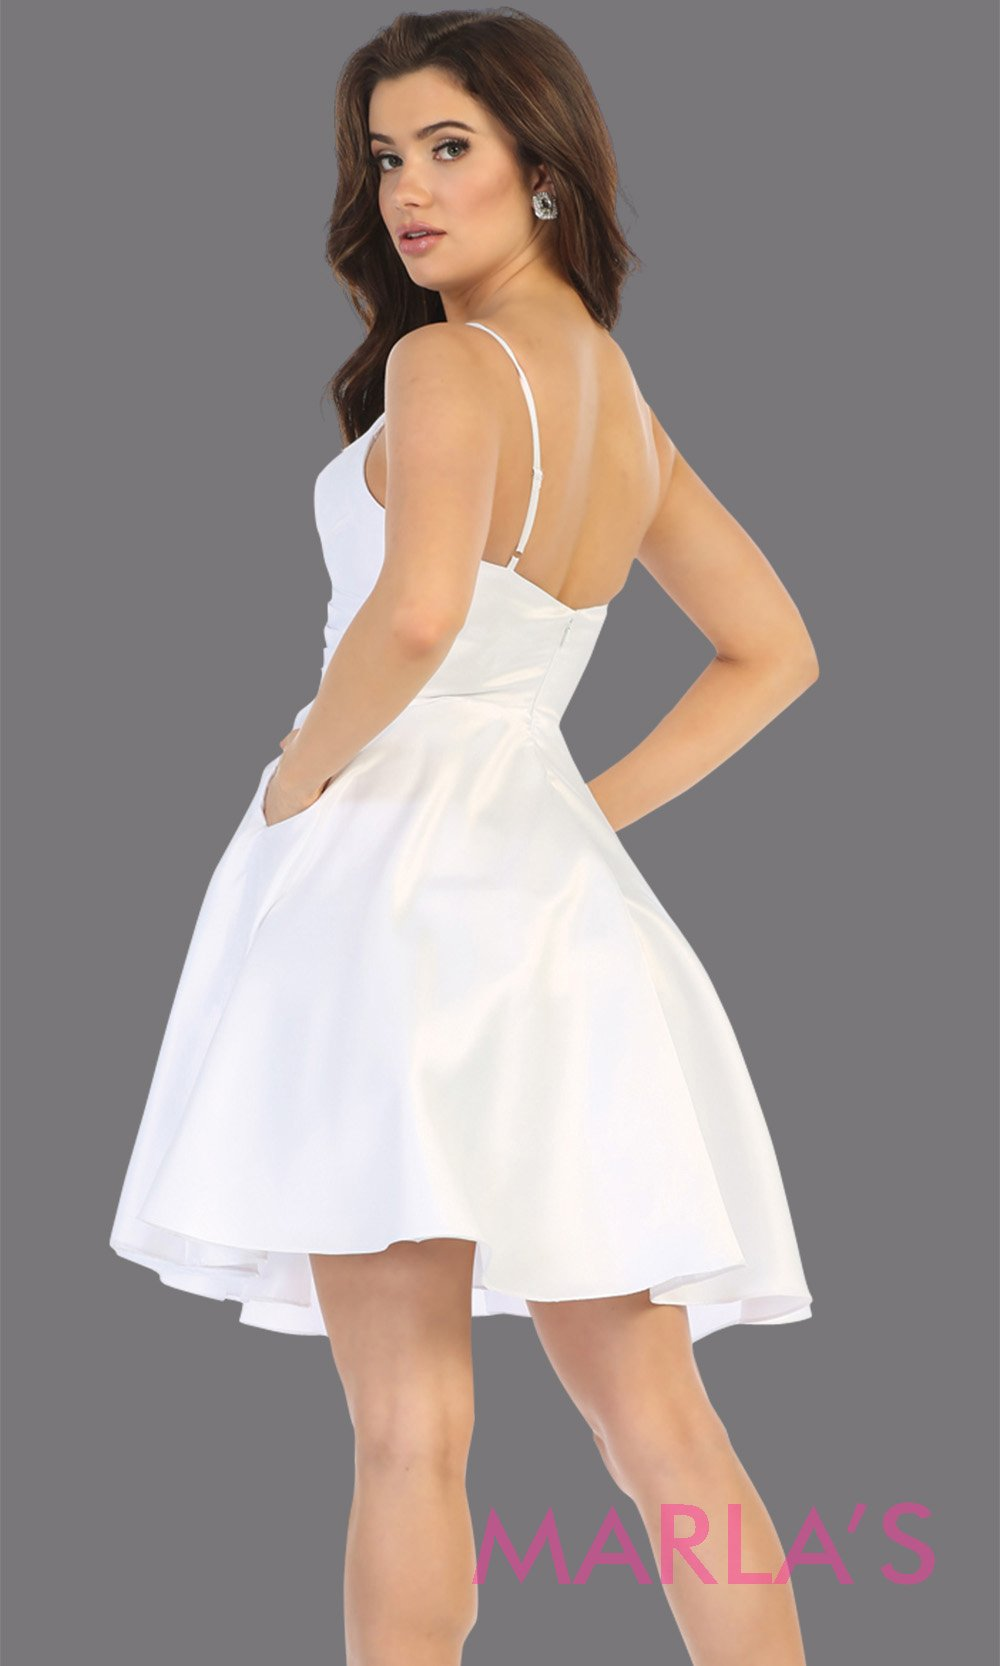 Back of Short v neck white grade 8 graduation dress with flowy skirt from mayqueen.This white simple dress is perfect for plus size grad, homecoming, Bat Mitzvah, quinceanera damas, middle school graduation, bridal shower, junior bridesmaids